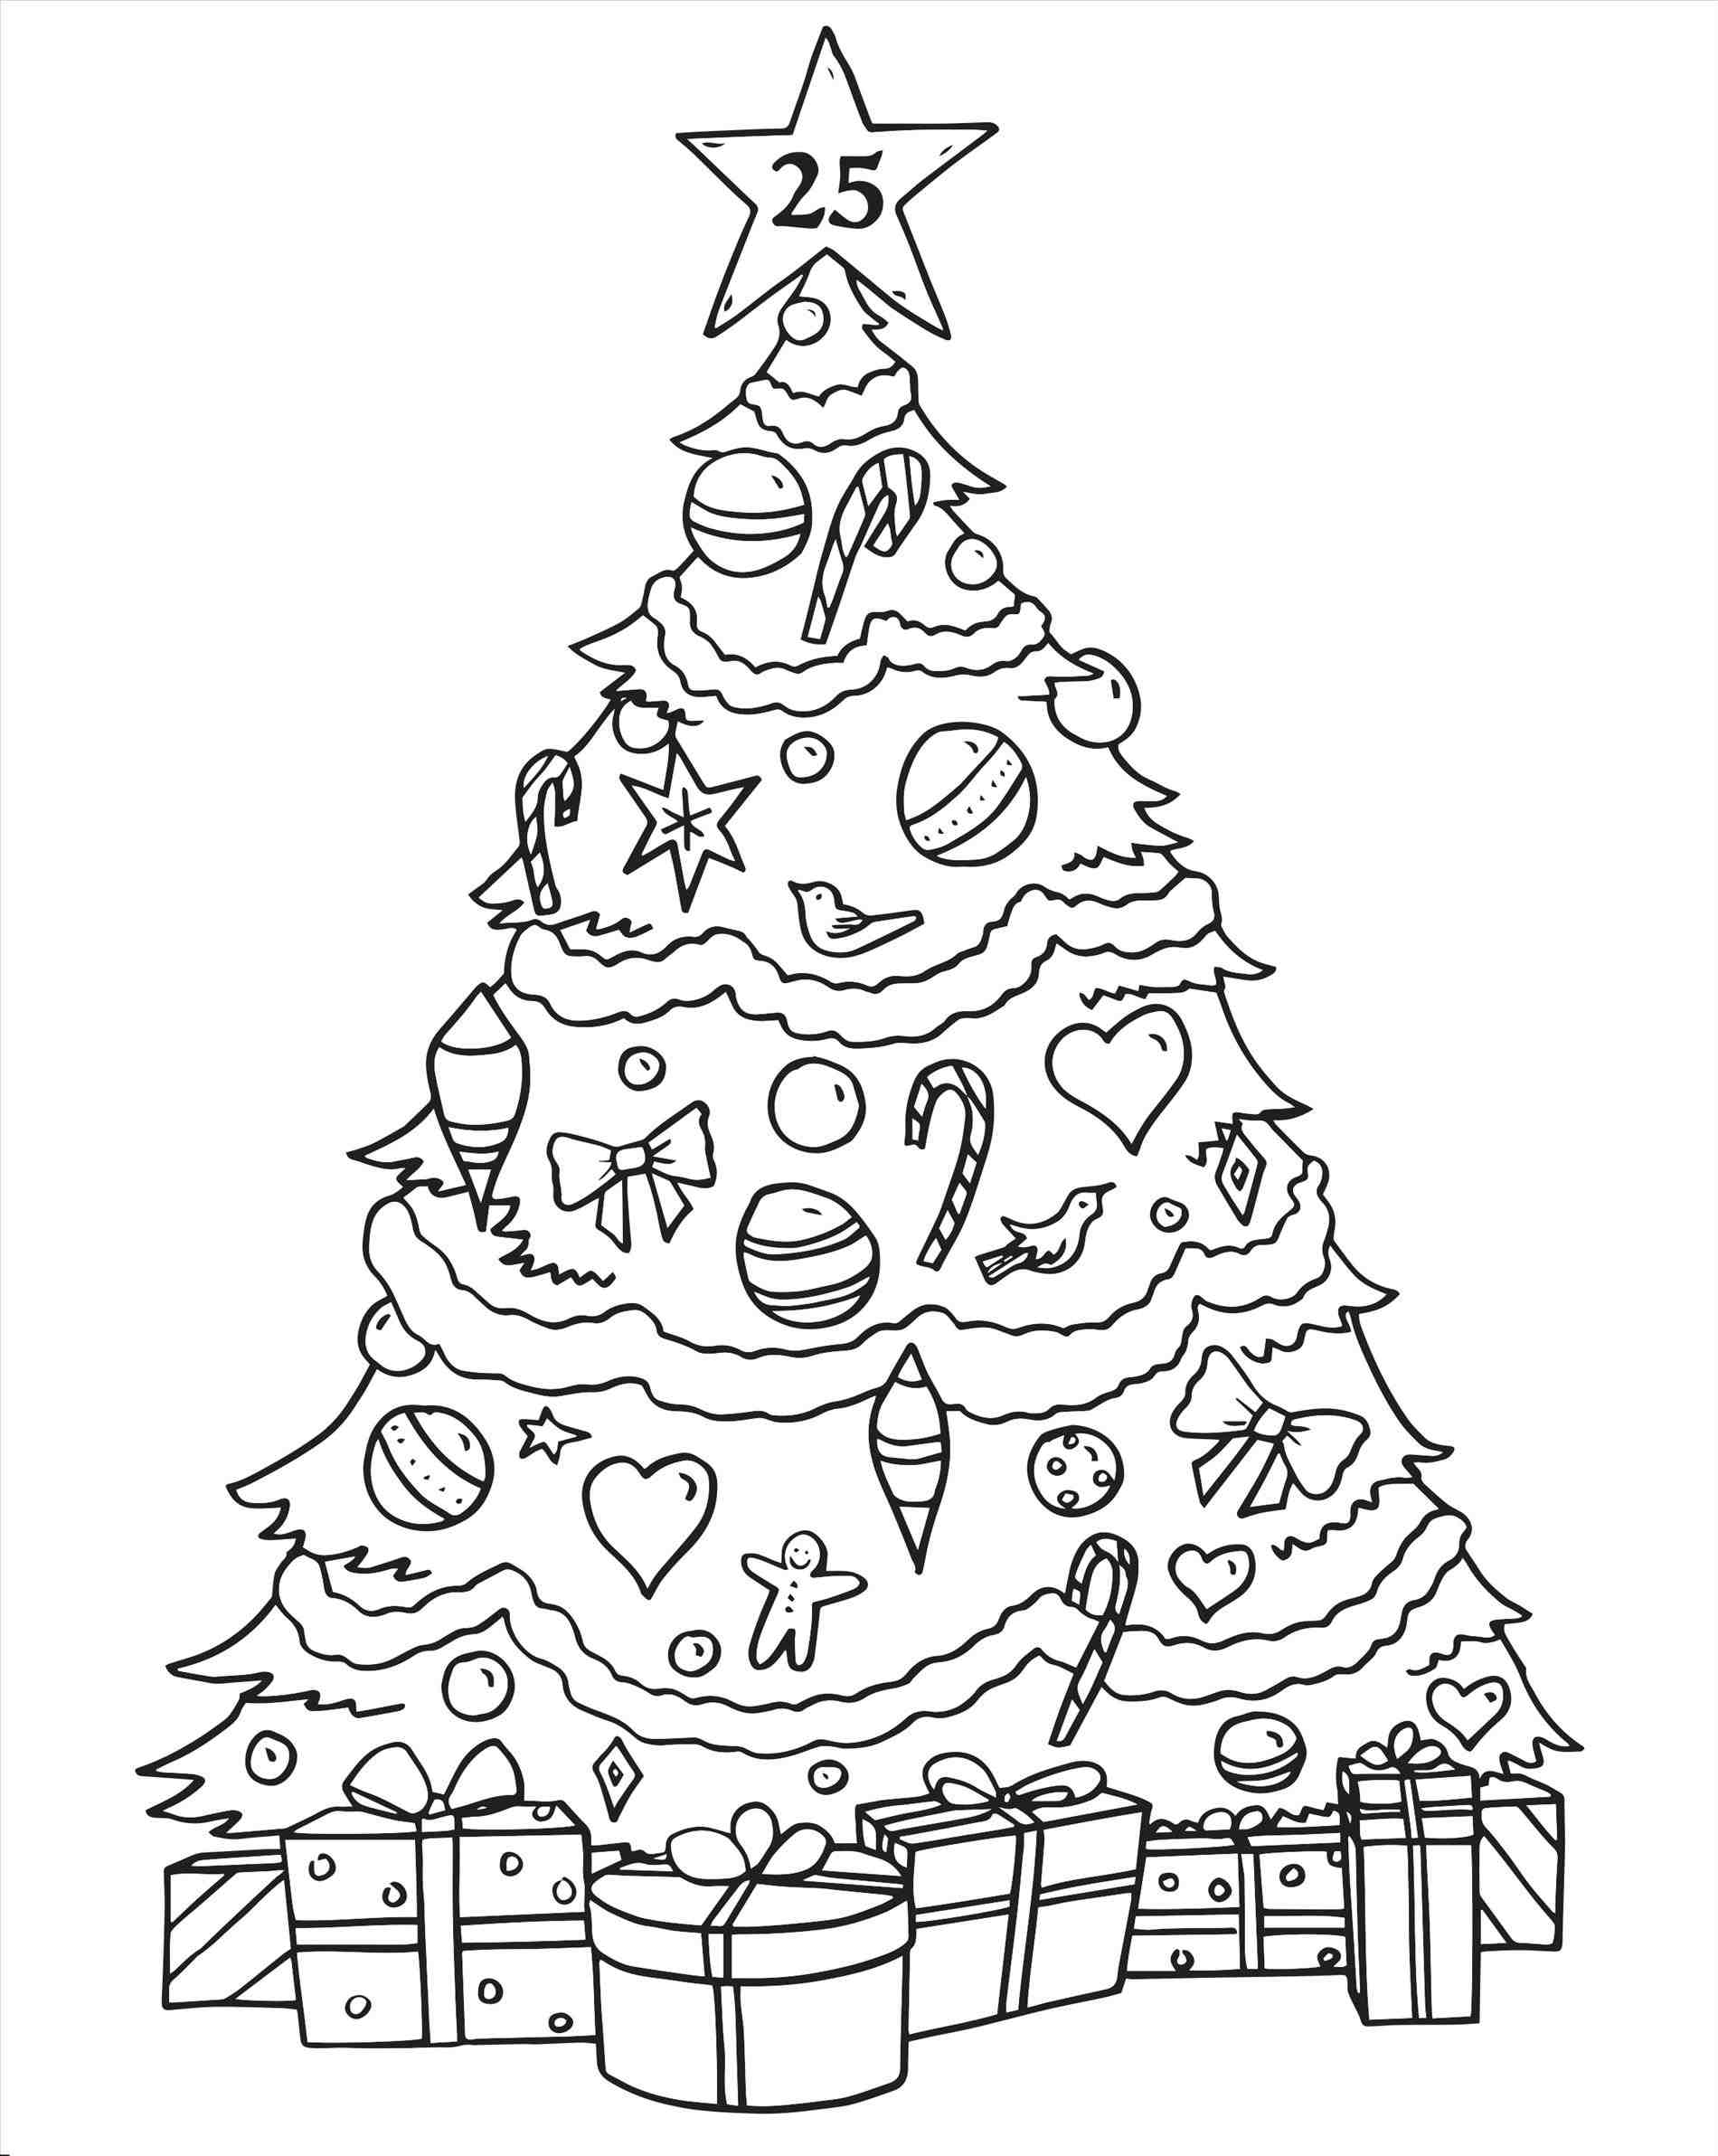 Christmas Tree Drawing For Kids at GetDrawings | Free download